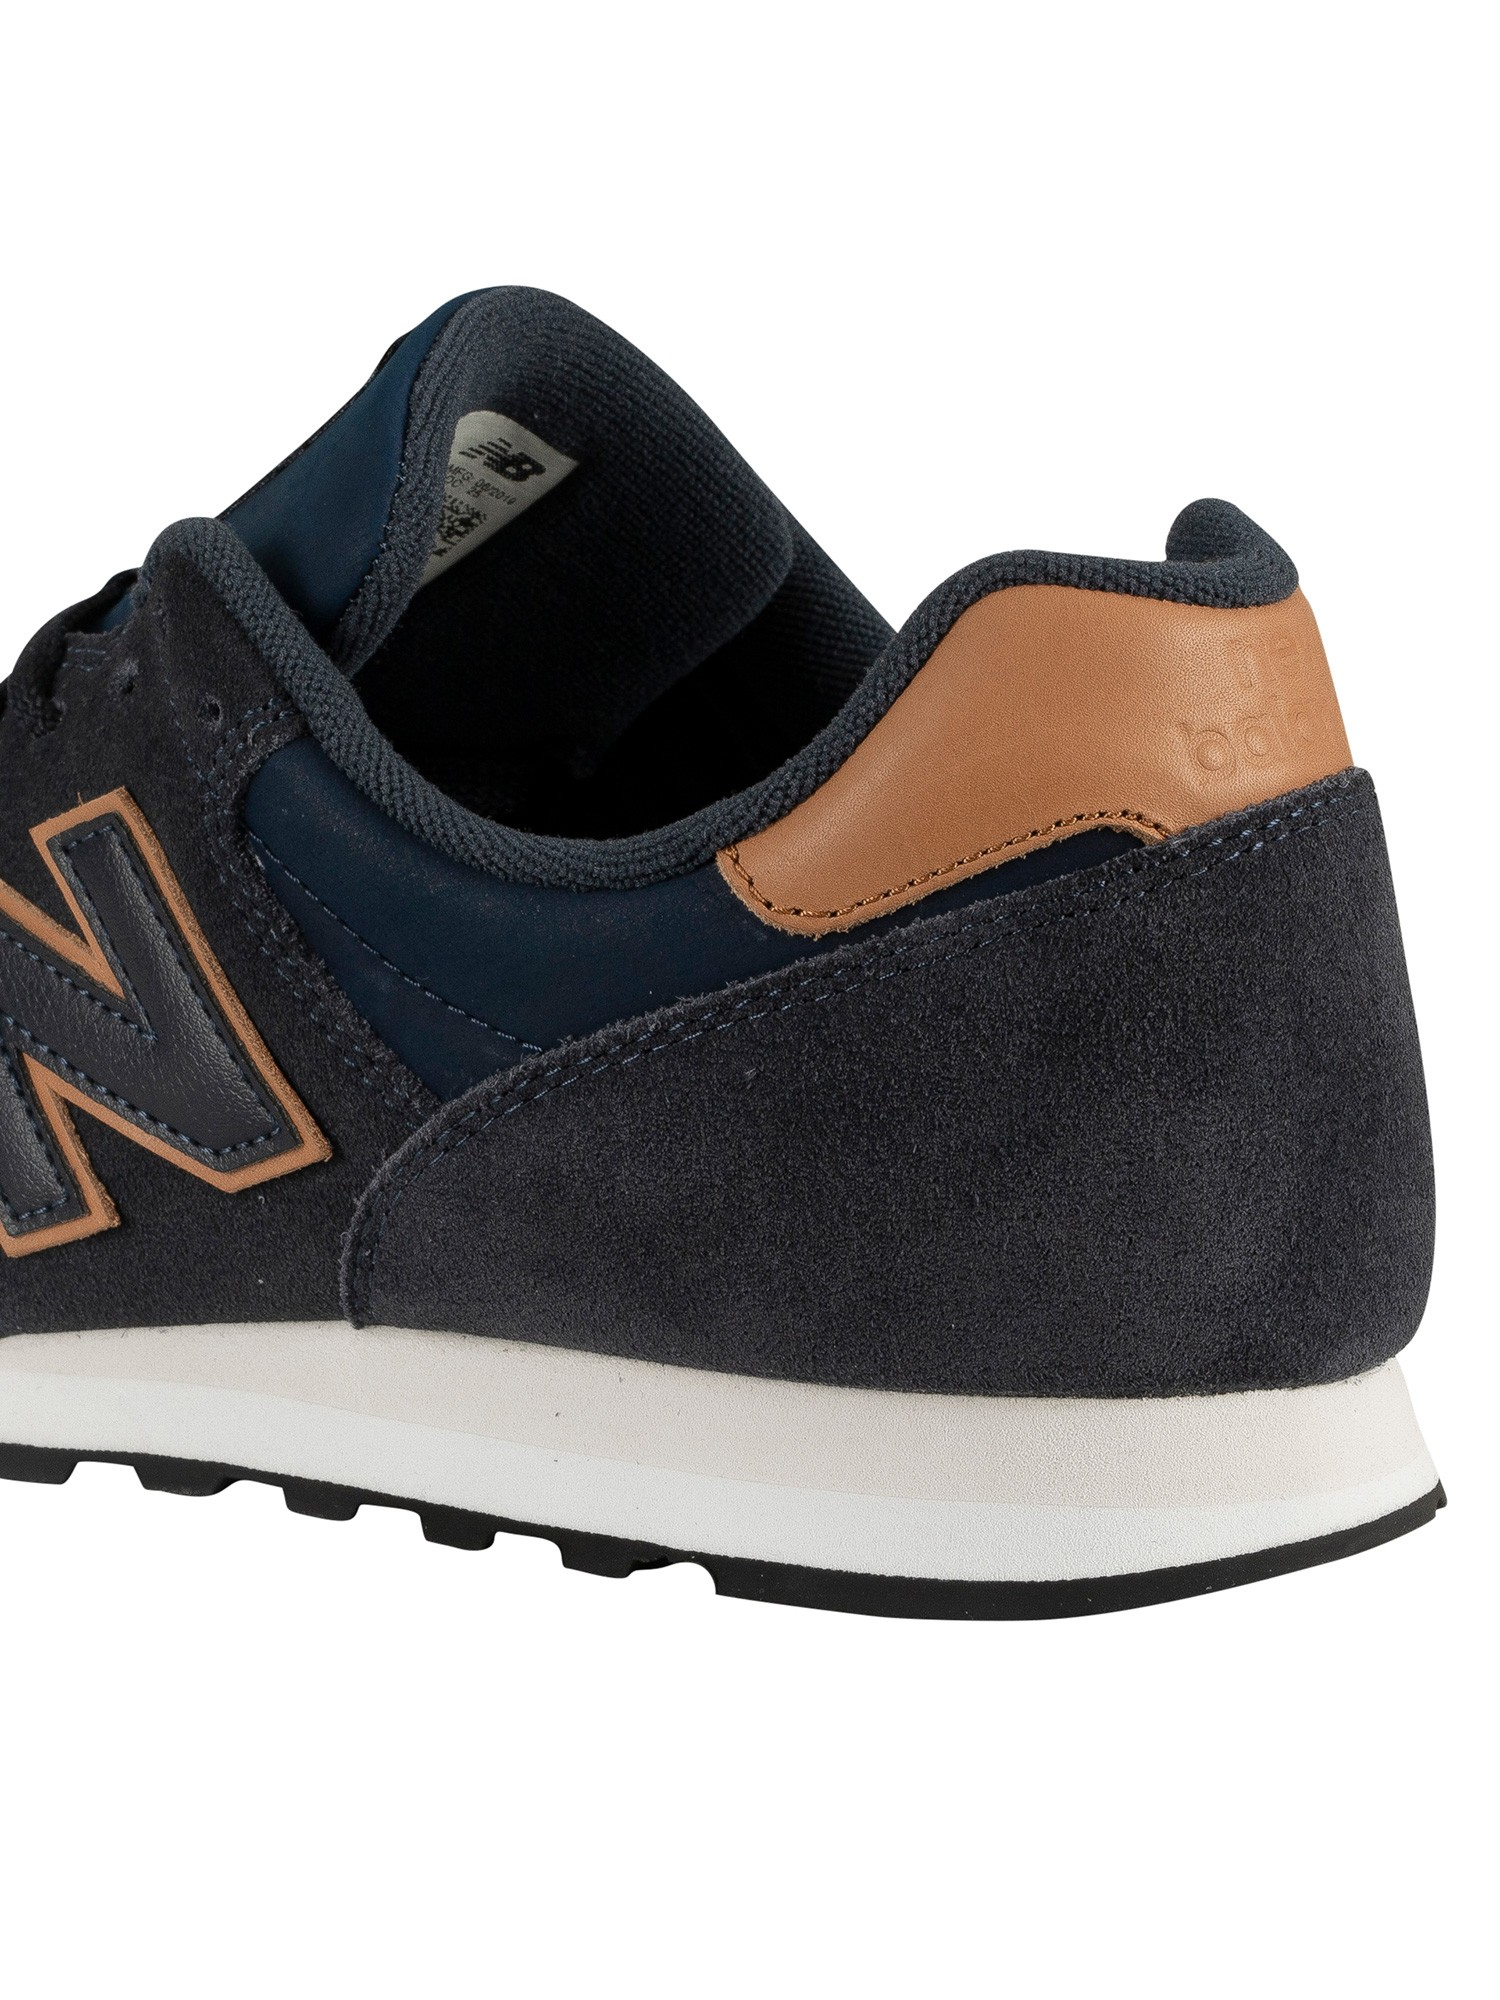 timeless design ec404 a5185 New Balance 373 Suede Trainers - Navy